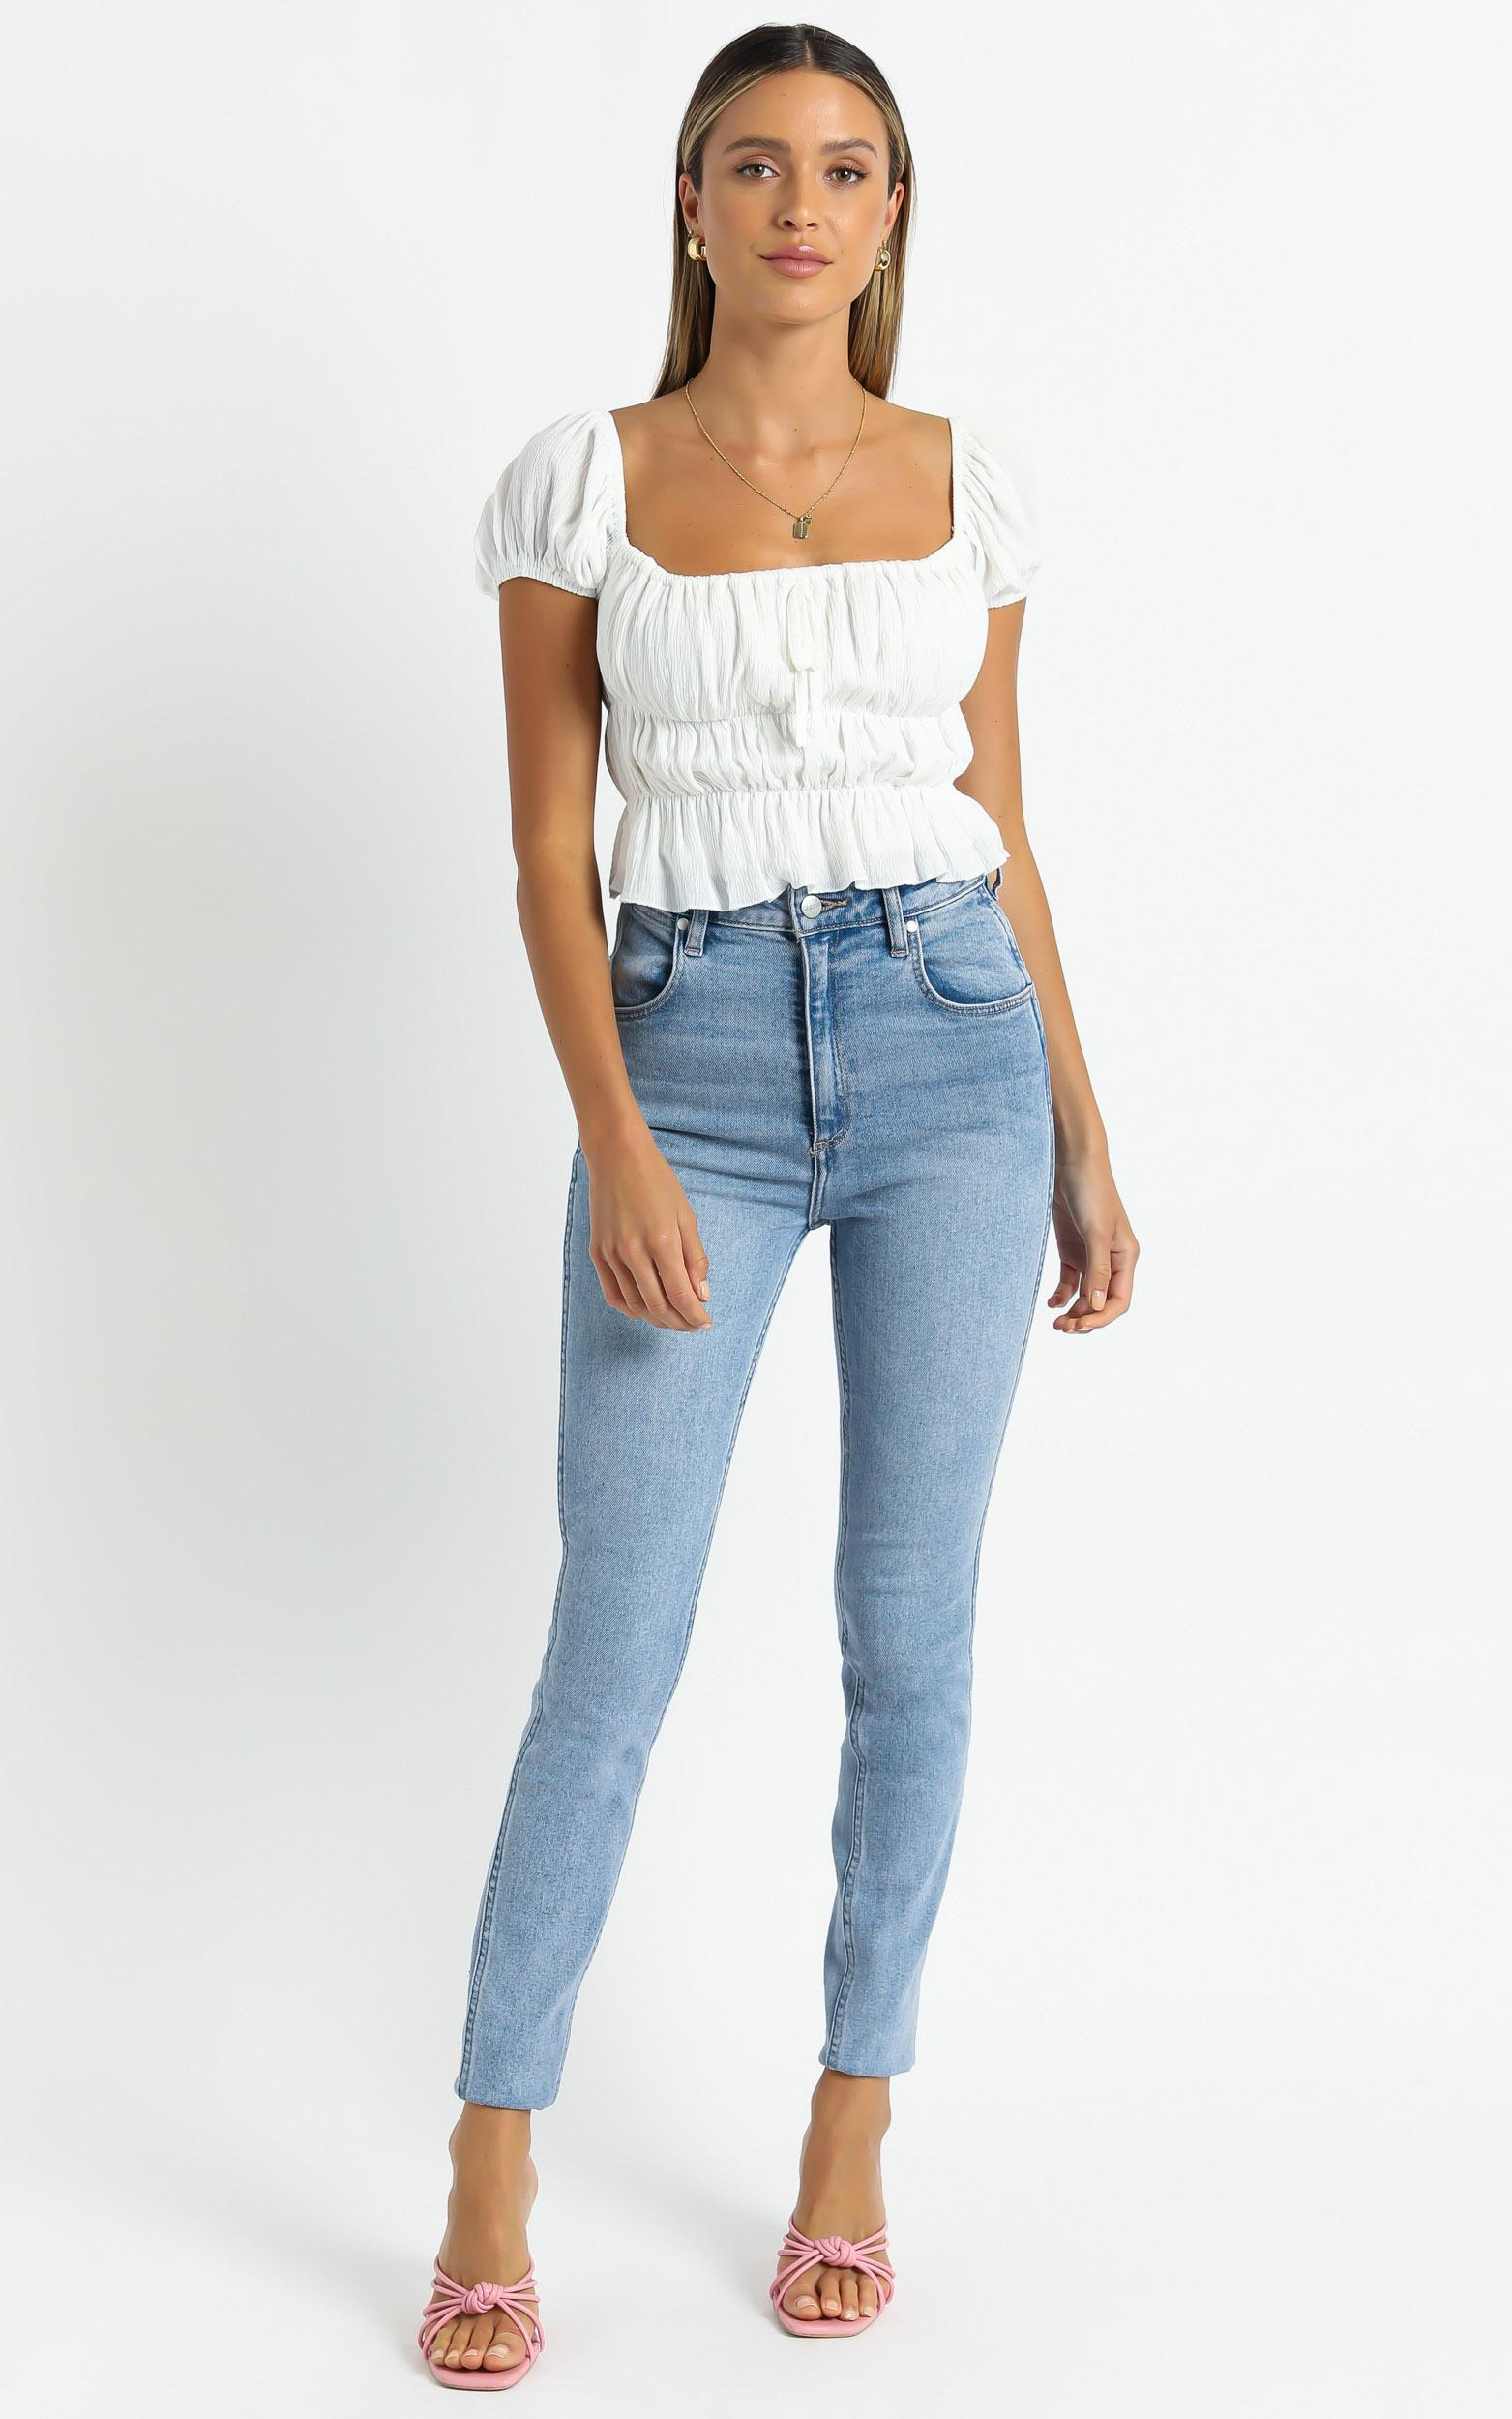 Gimme Top In White - 16 (XXL), WHT1, hi-res image number null